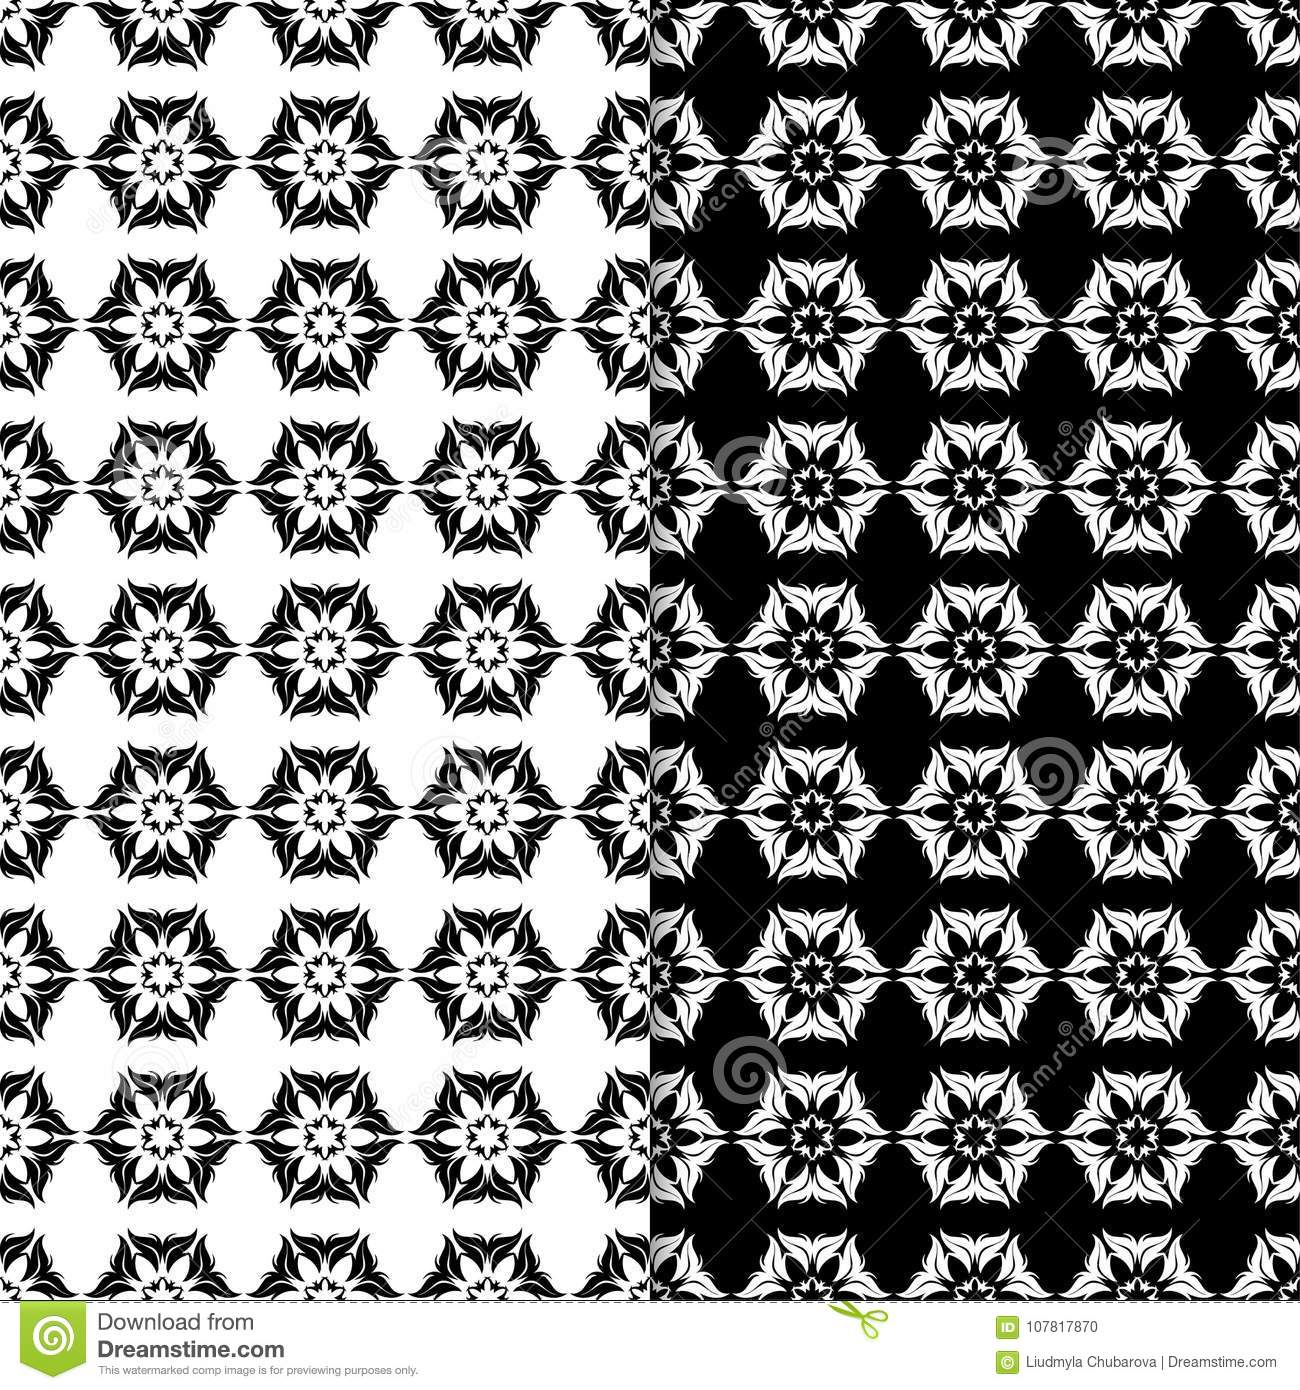 Black And White Floral Seamless Patterns Set Of Backgrounds